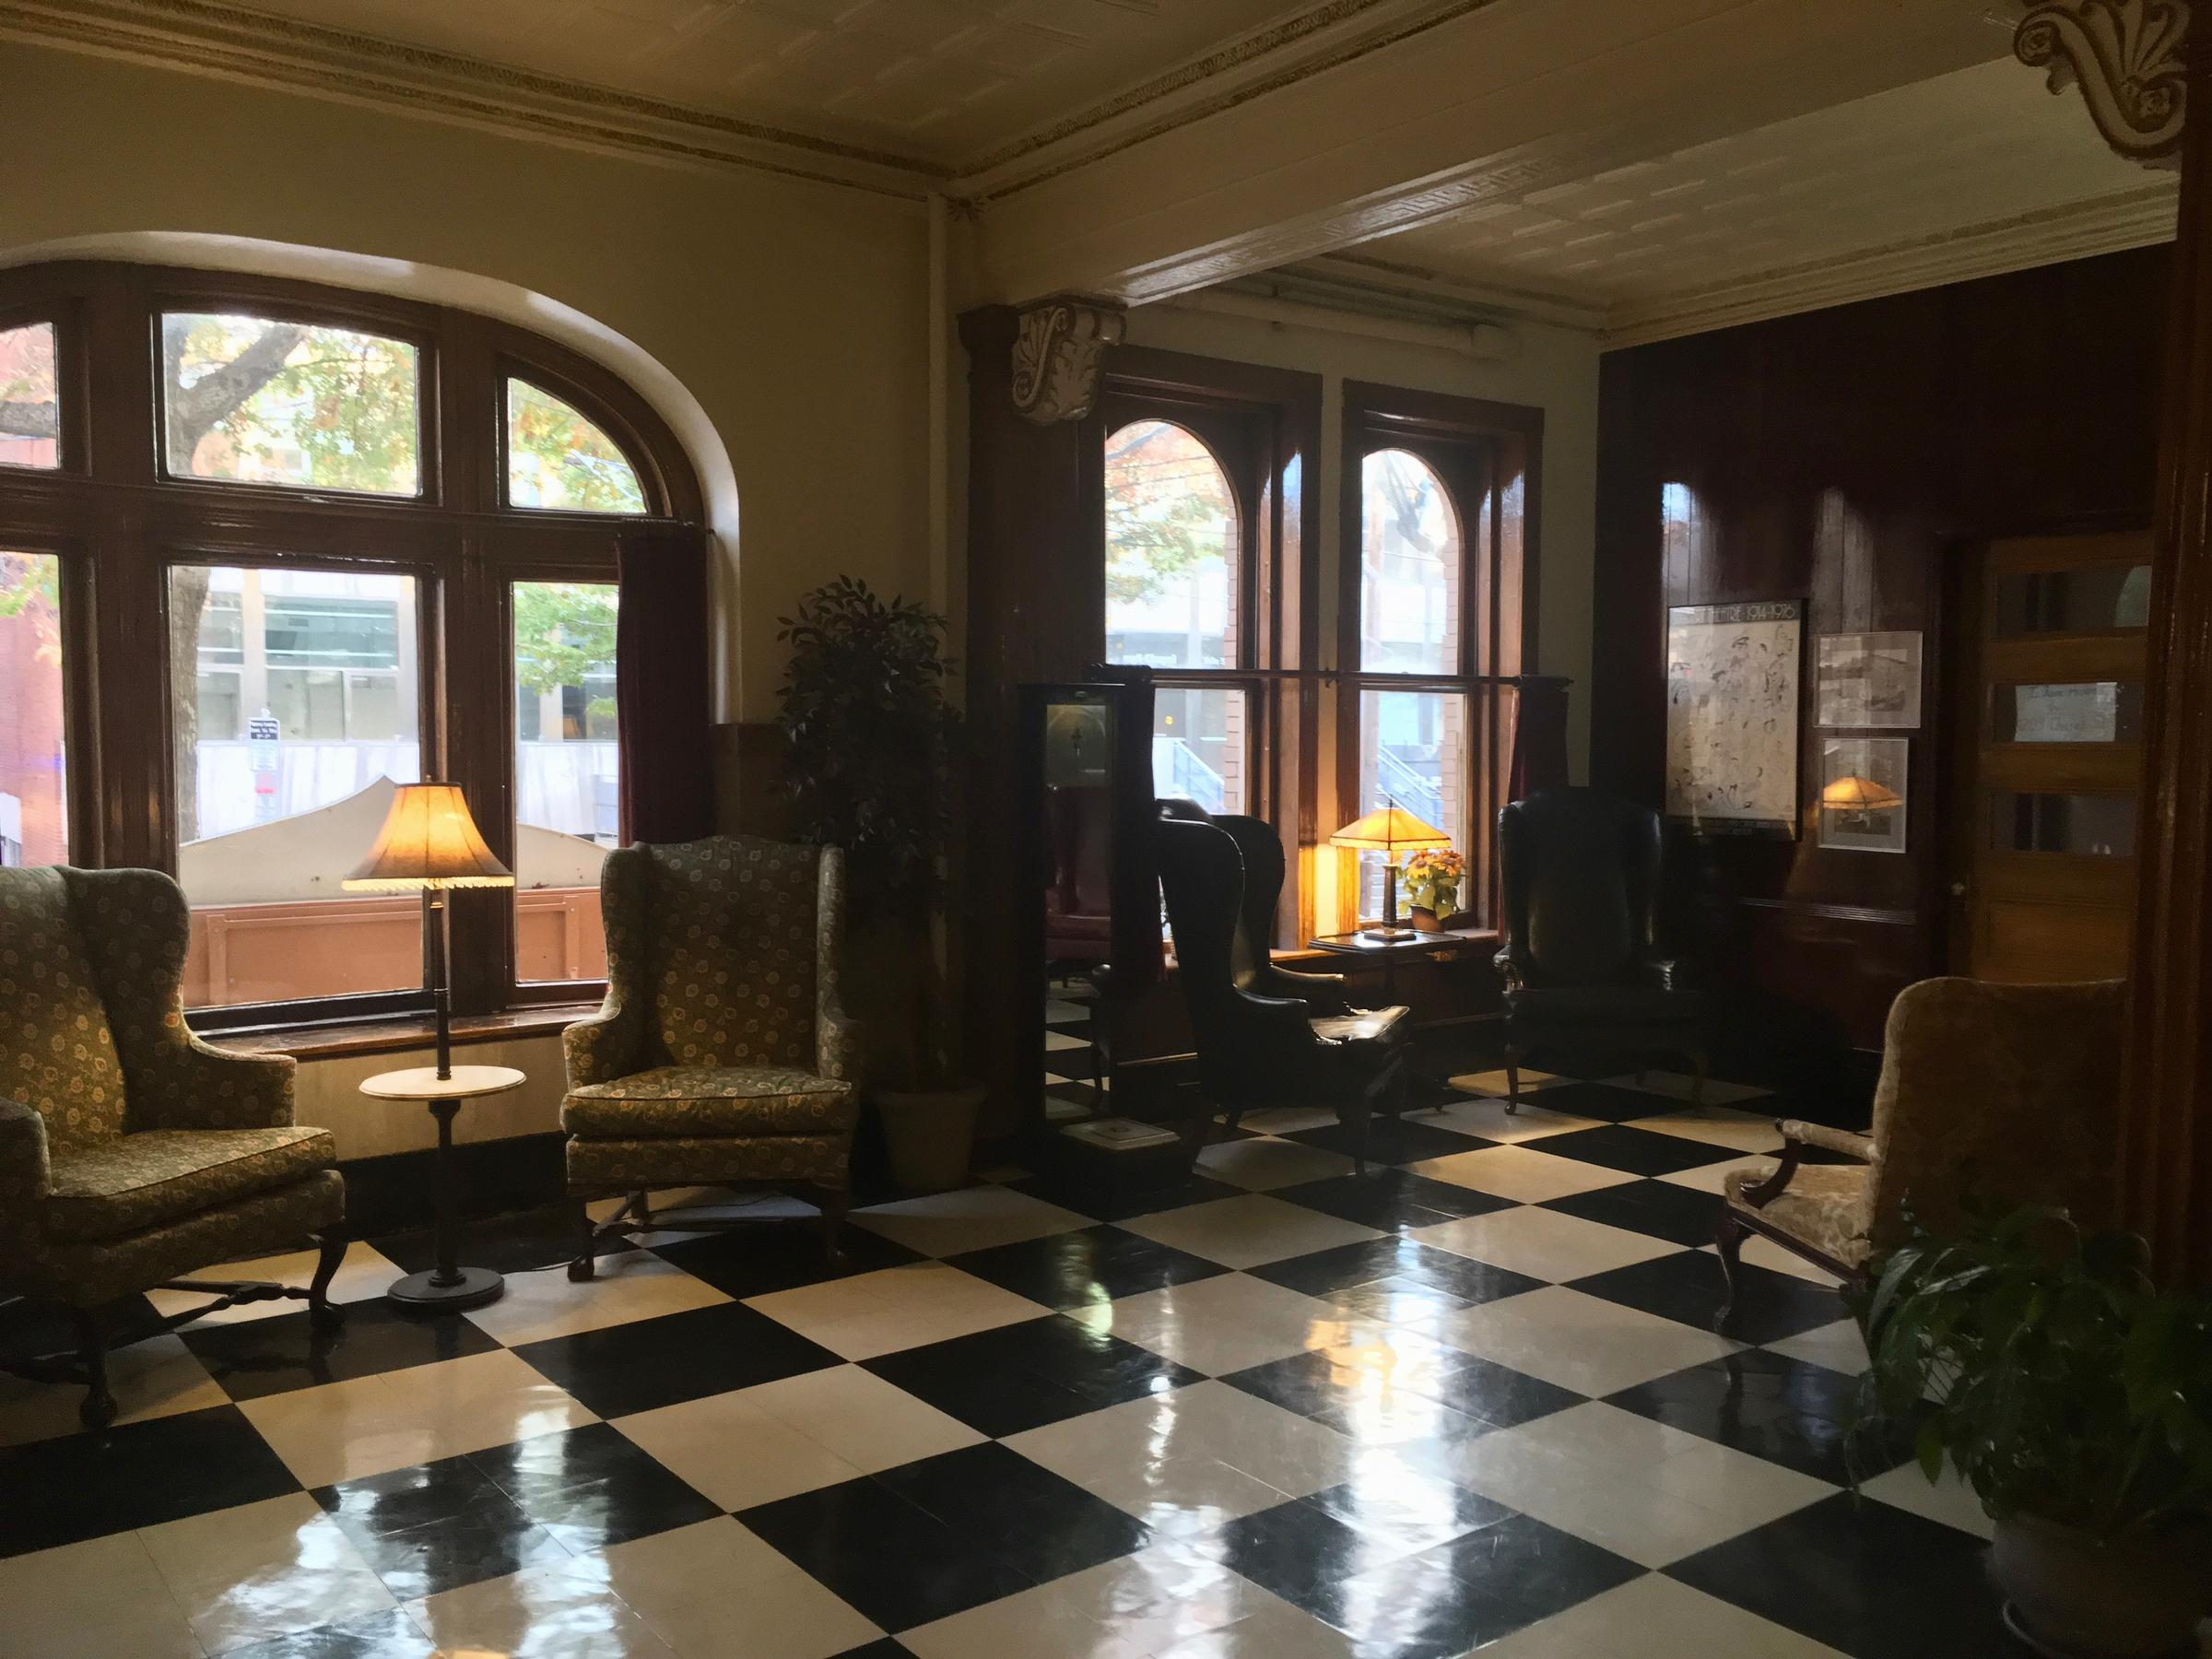 new haven landmark transforms to high end hotel leaving low income